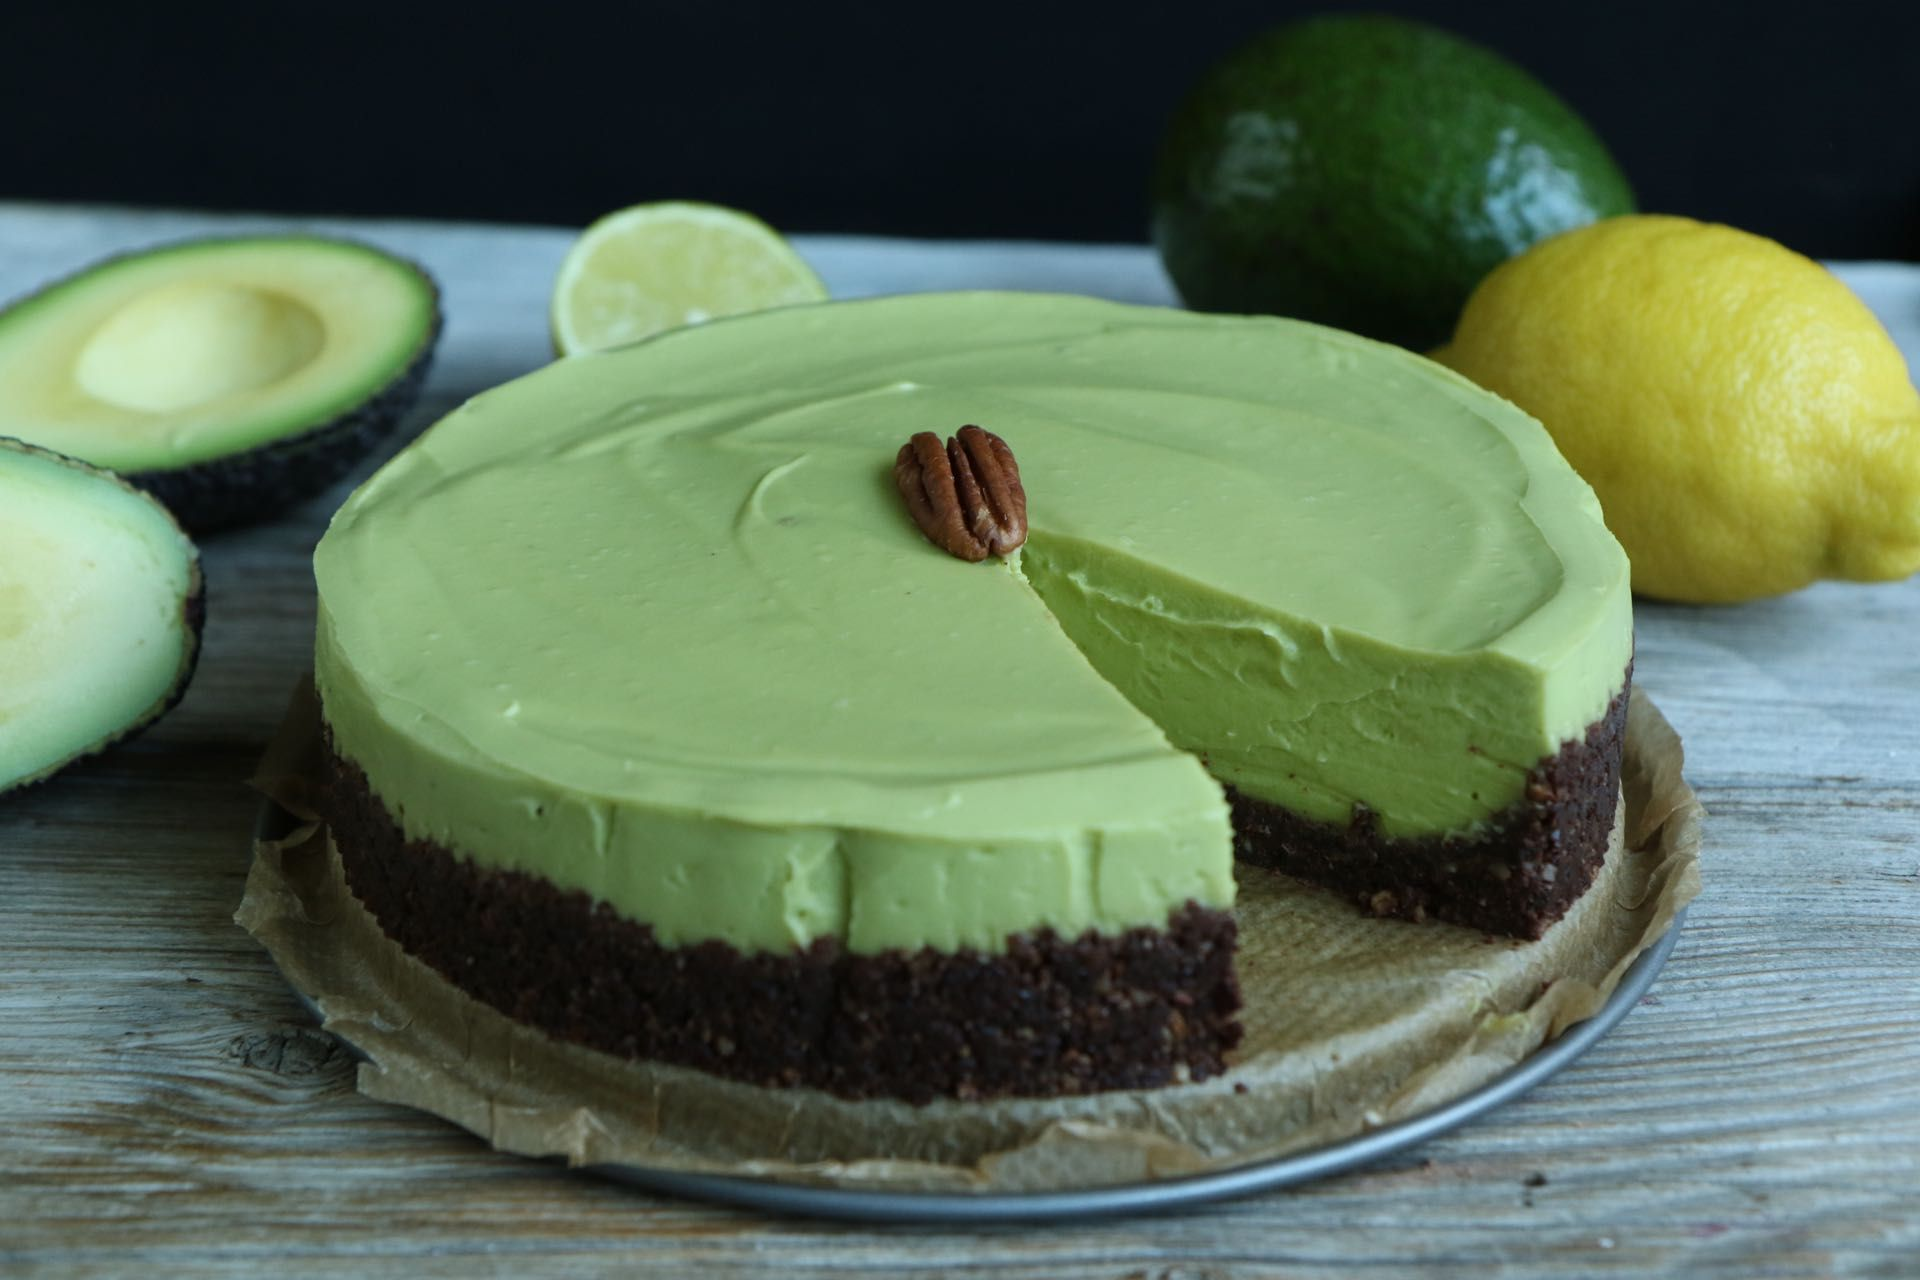 Avocado Kuchen Low Carb Avocado Cheesecake Vegan Cakes And Sweets Low Carb